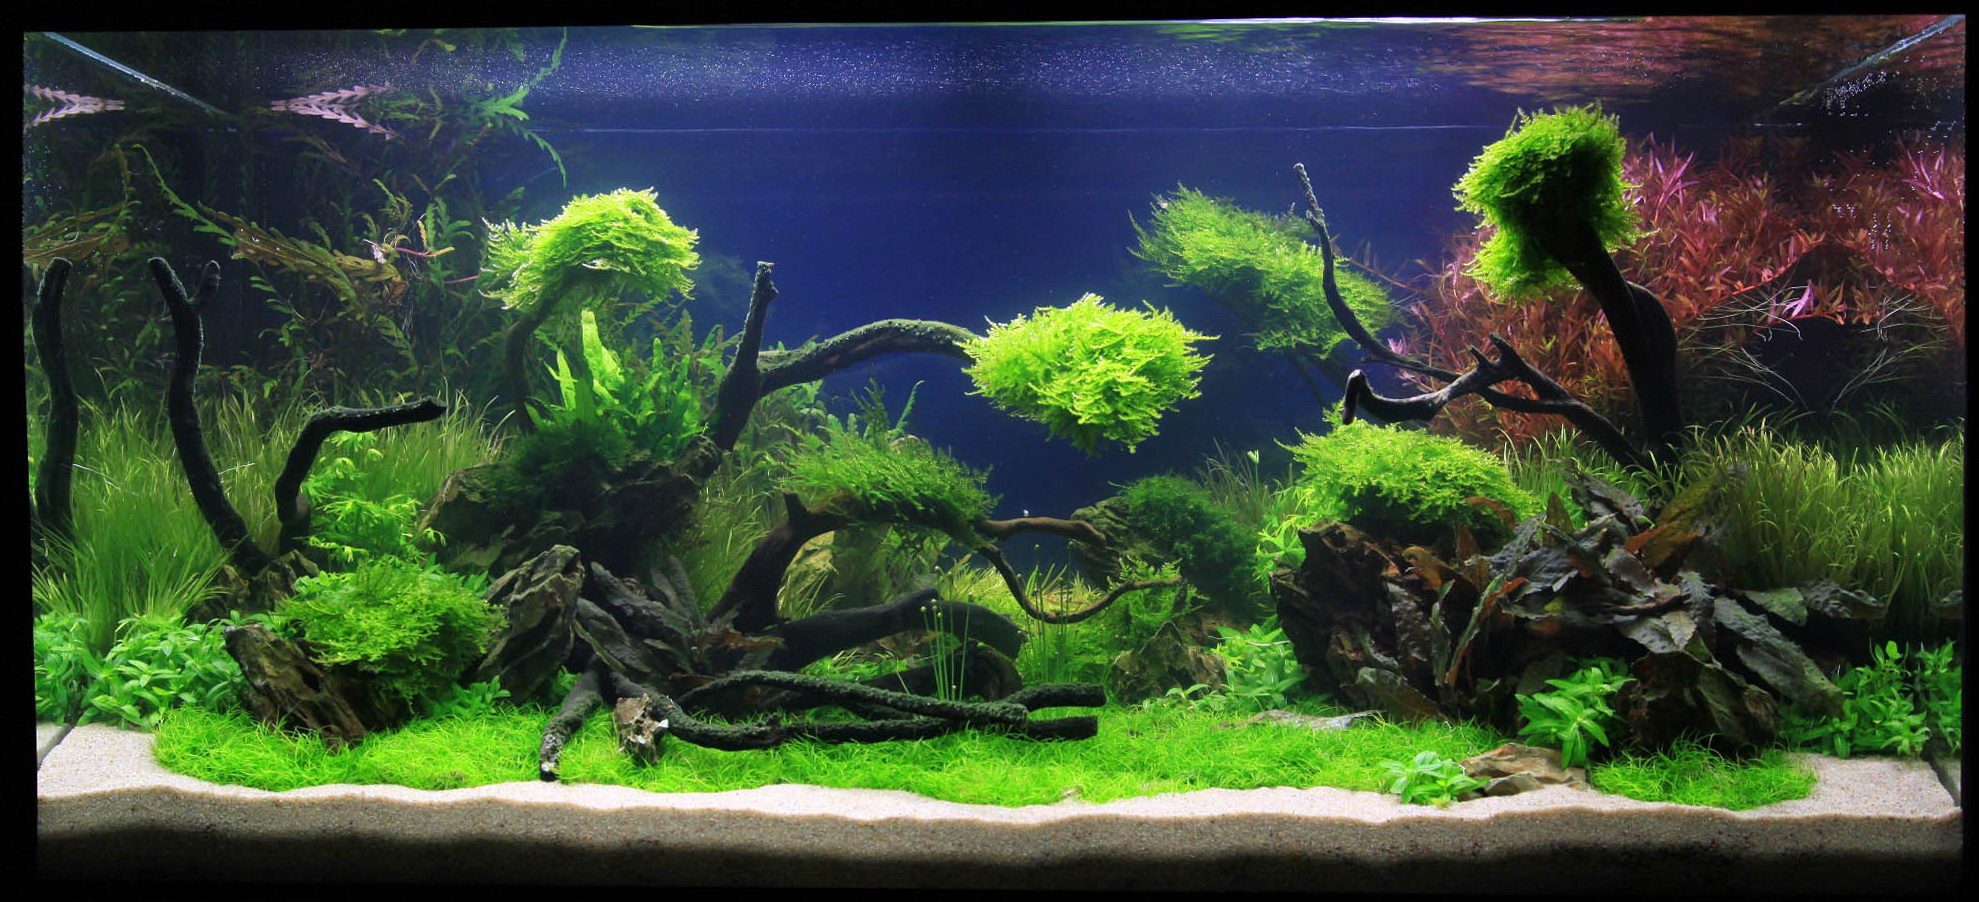 Image Aquarium Aquascape Design Ideas Download